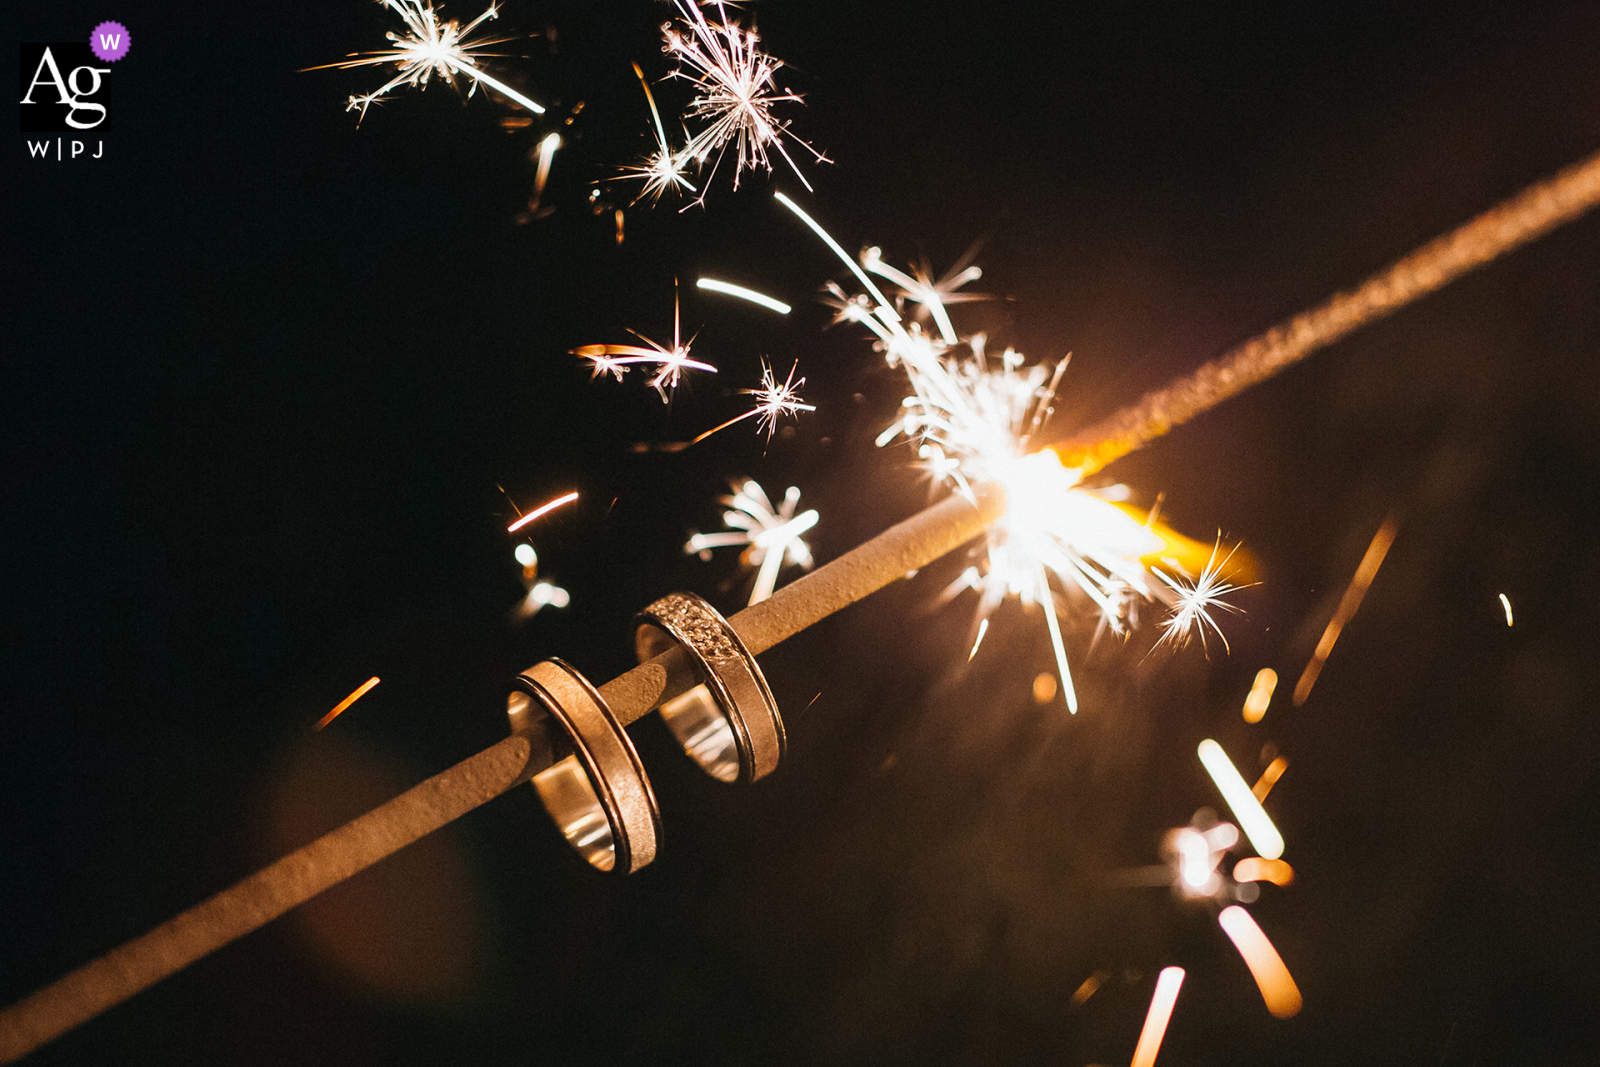 Detail image of wedding rings on sparkler by Slovakia photographer